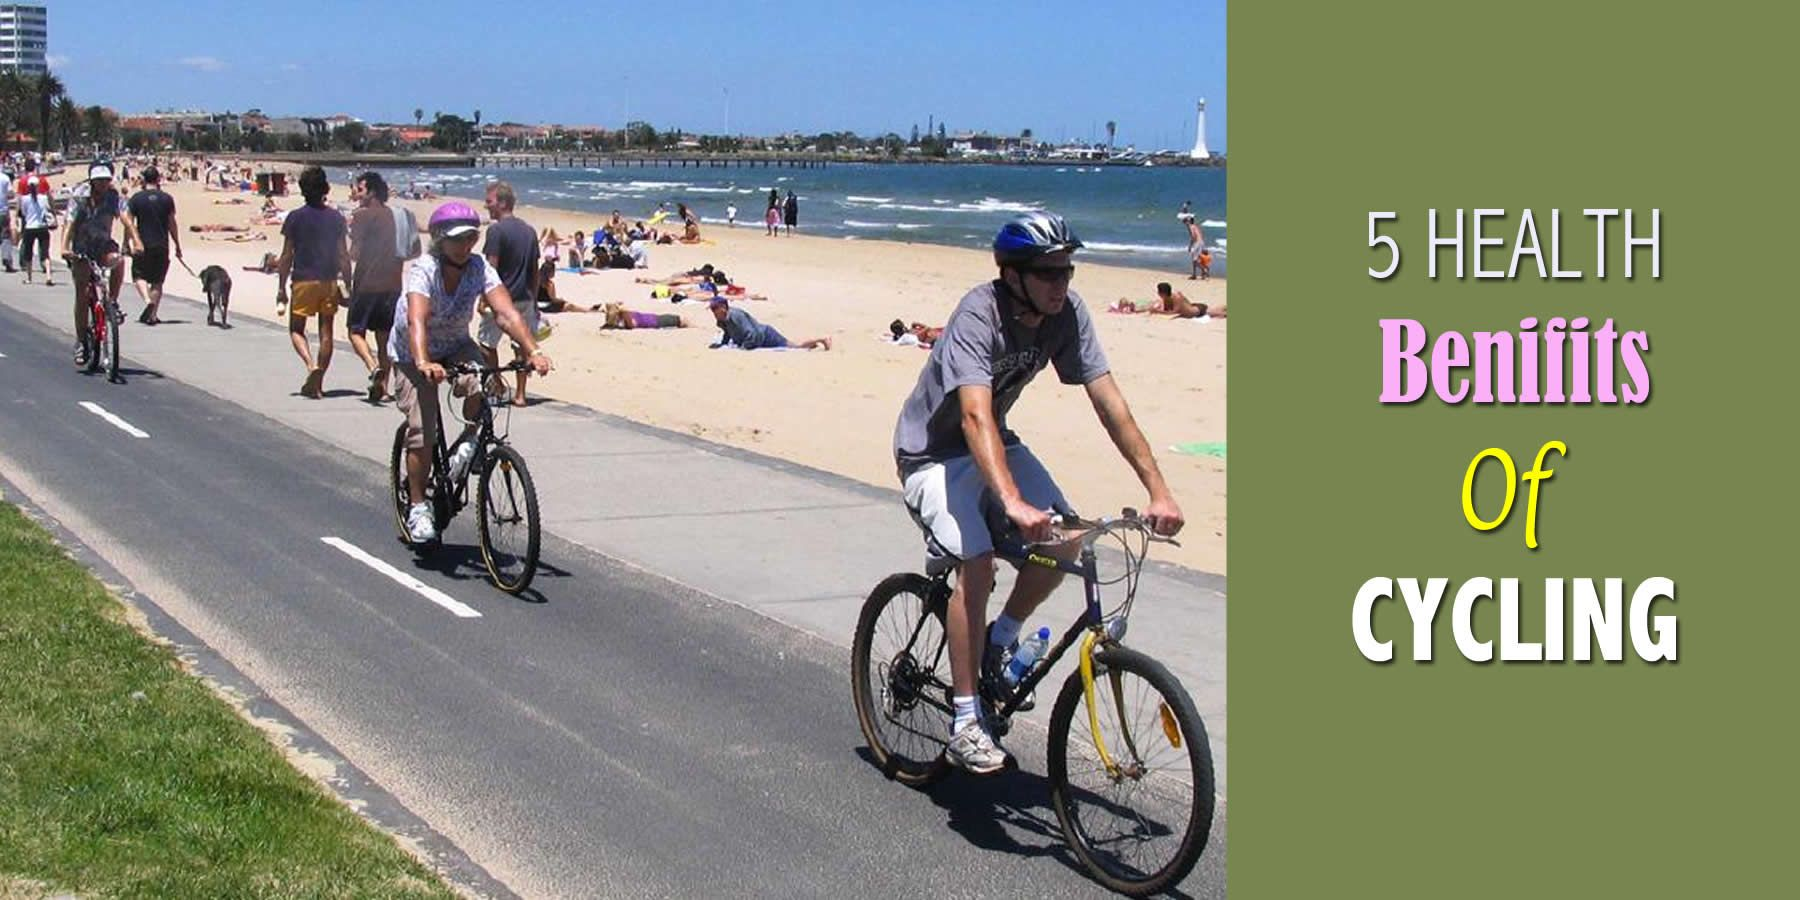 There are many benefits of cycling. We have described 5 benefits of cycling.